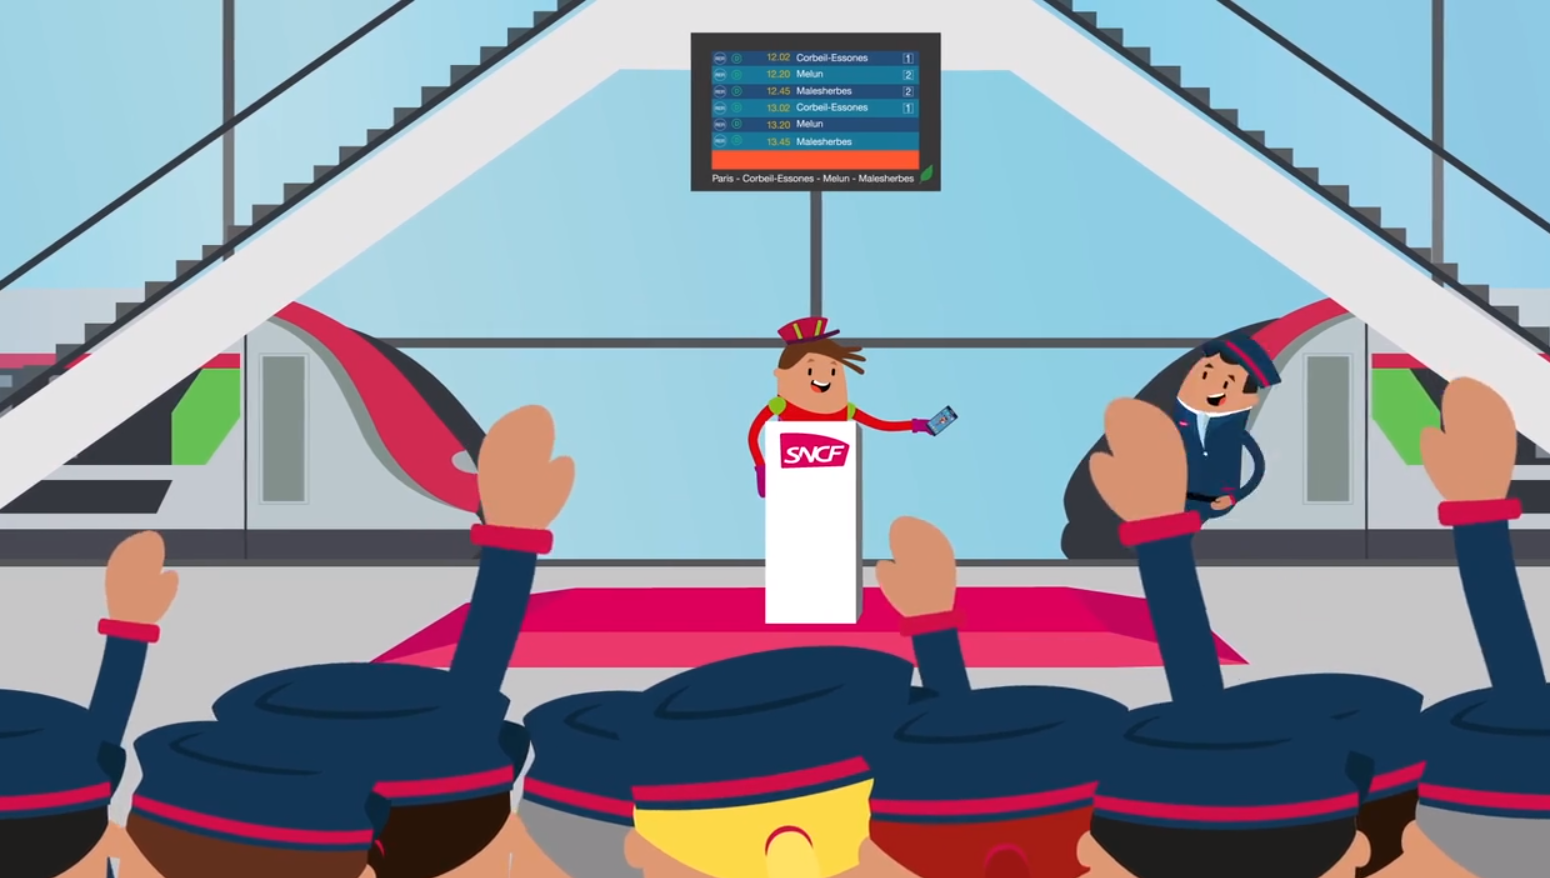 Gamification - Accompagnement changement SNCF